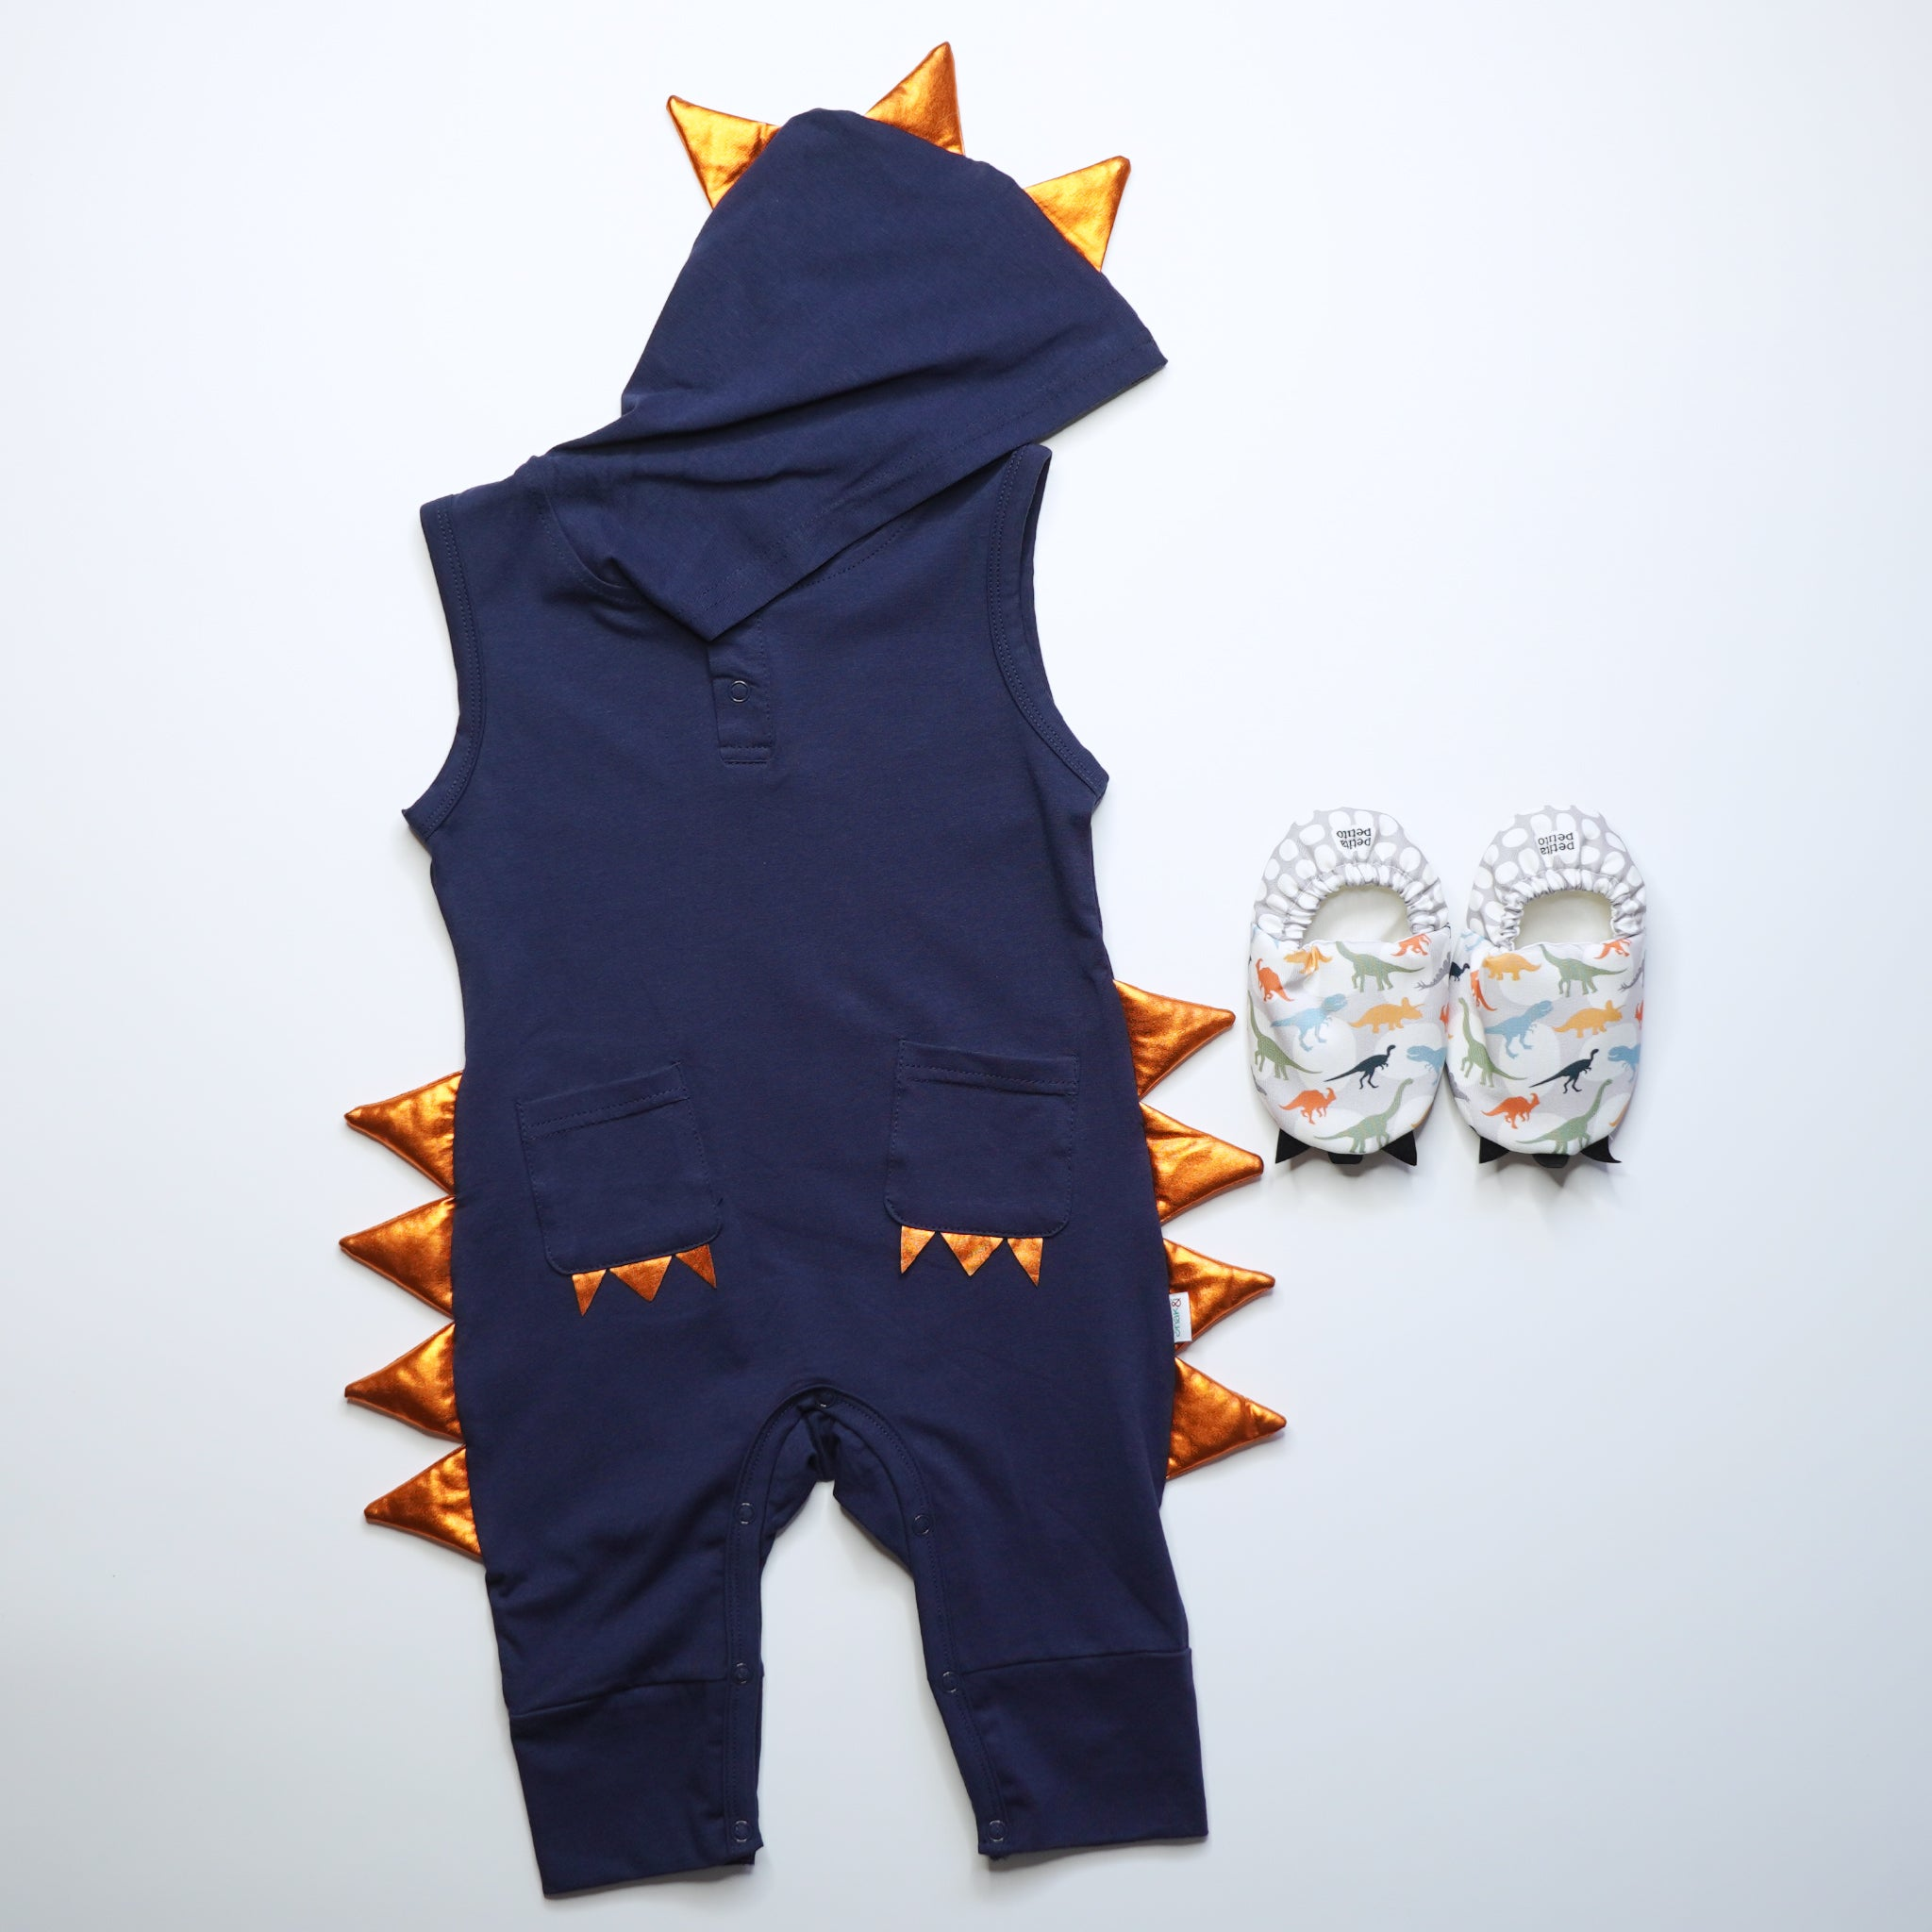 Little Dino Mini Shoes with Jacob Dino Jumpsuit - Navy Blue